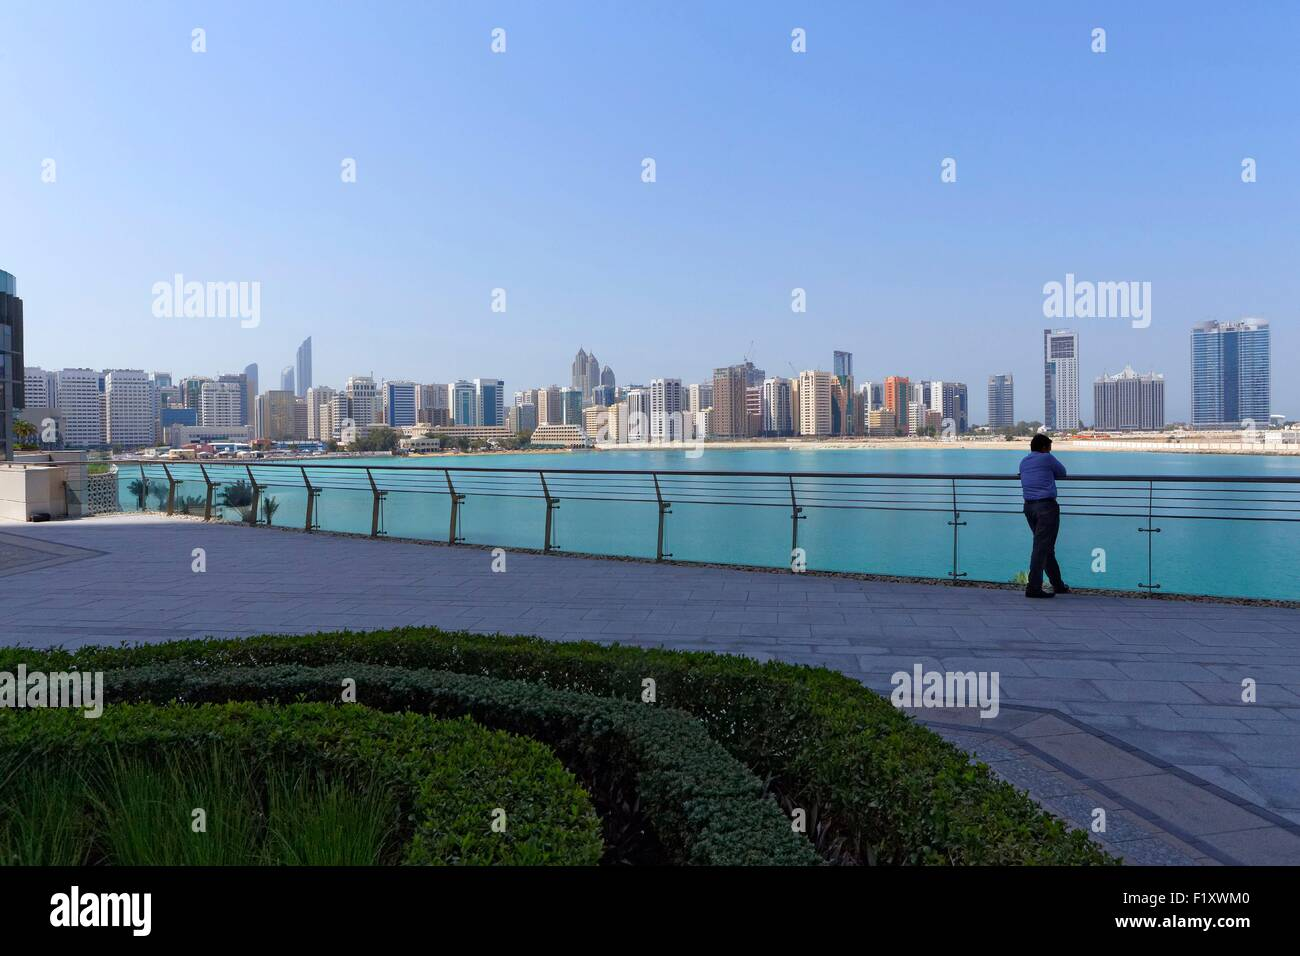 United Arab Emirates, Abu Dhabi, view from the new district of Al Maryah Island - Stock Image